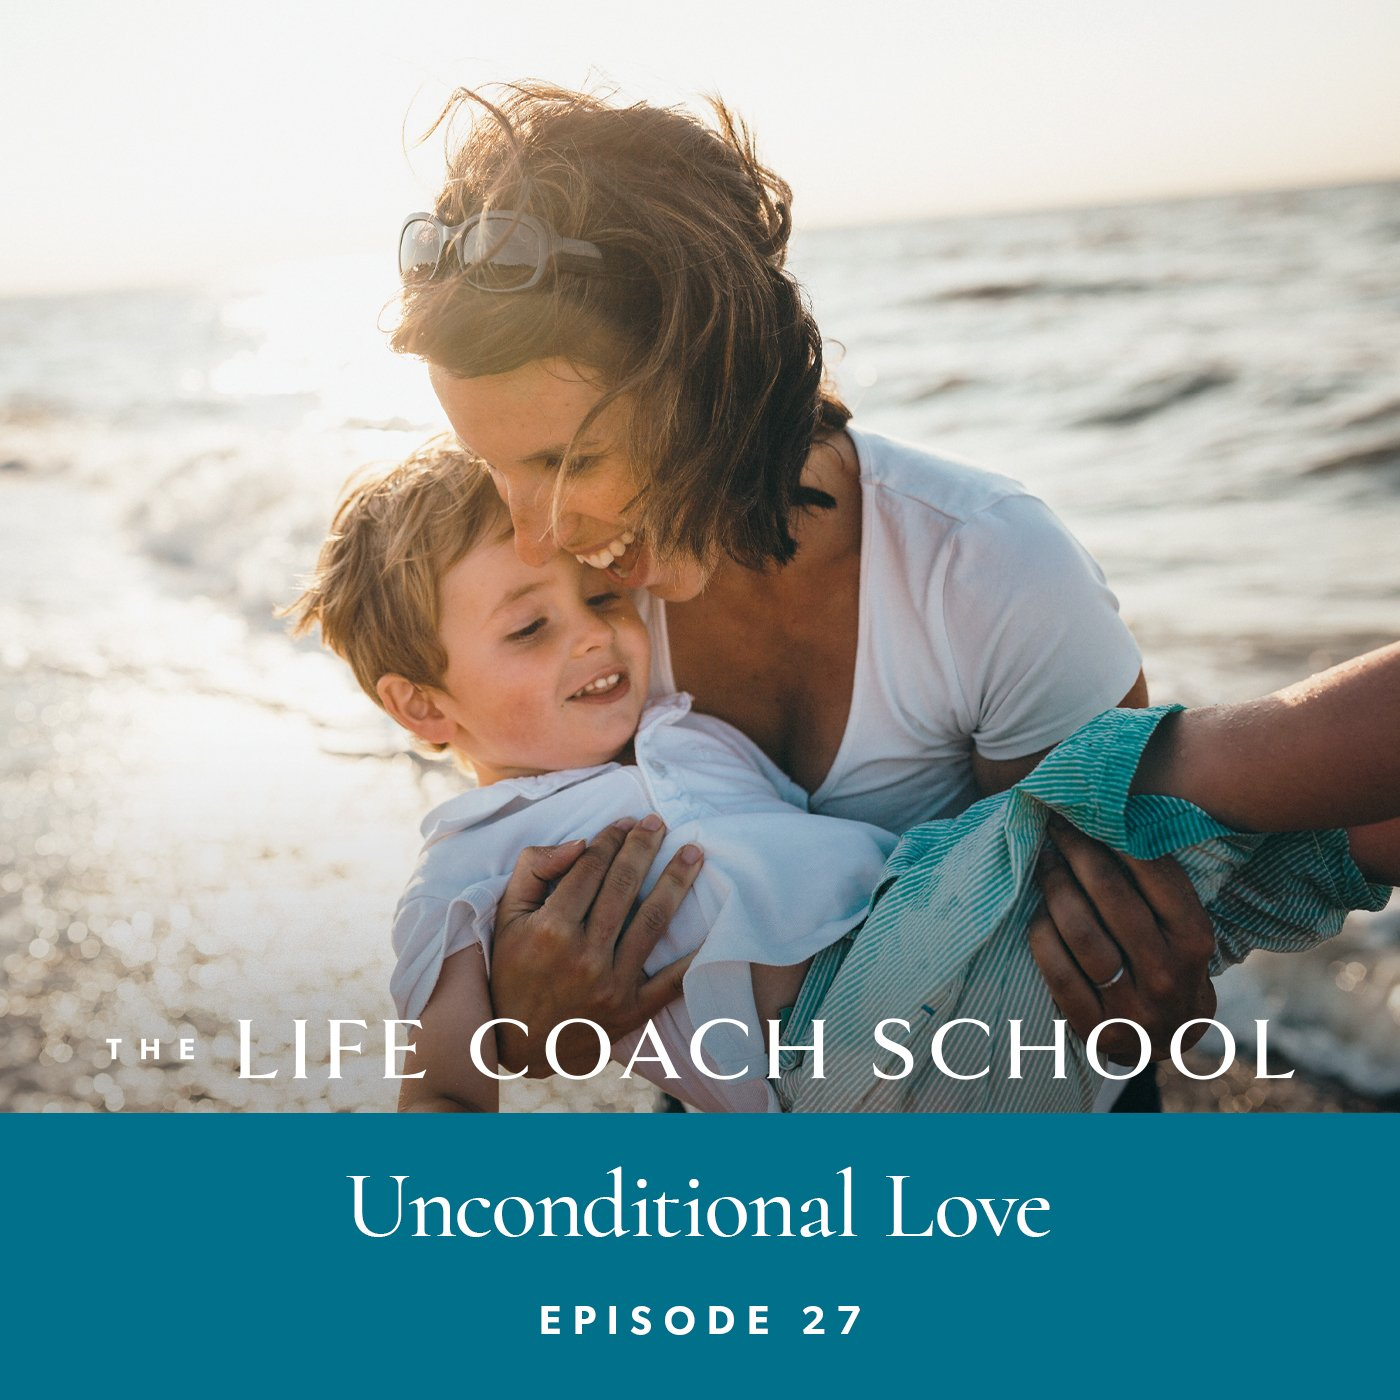 The Life Coach School Podcast with Brooke Castillo | Episode 27 | Unconditional Love